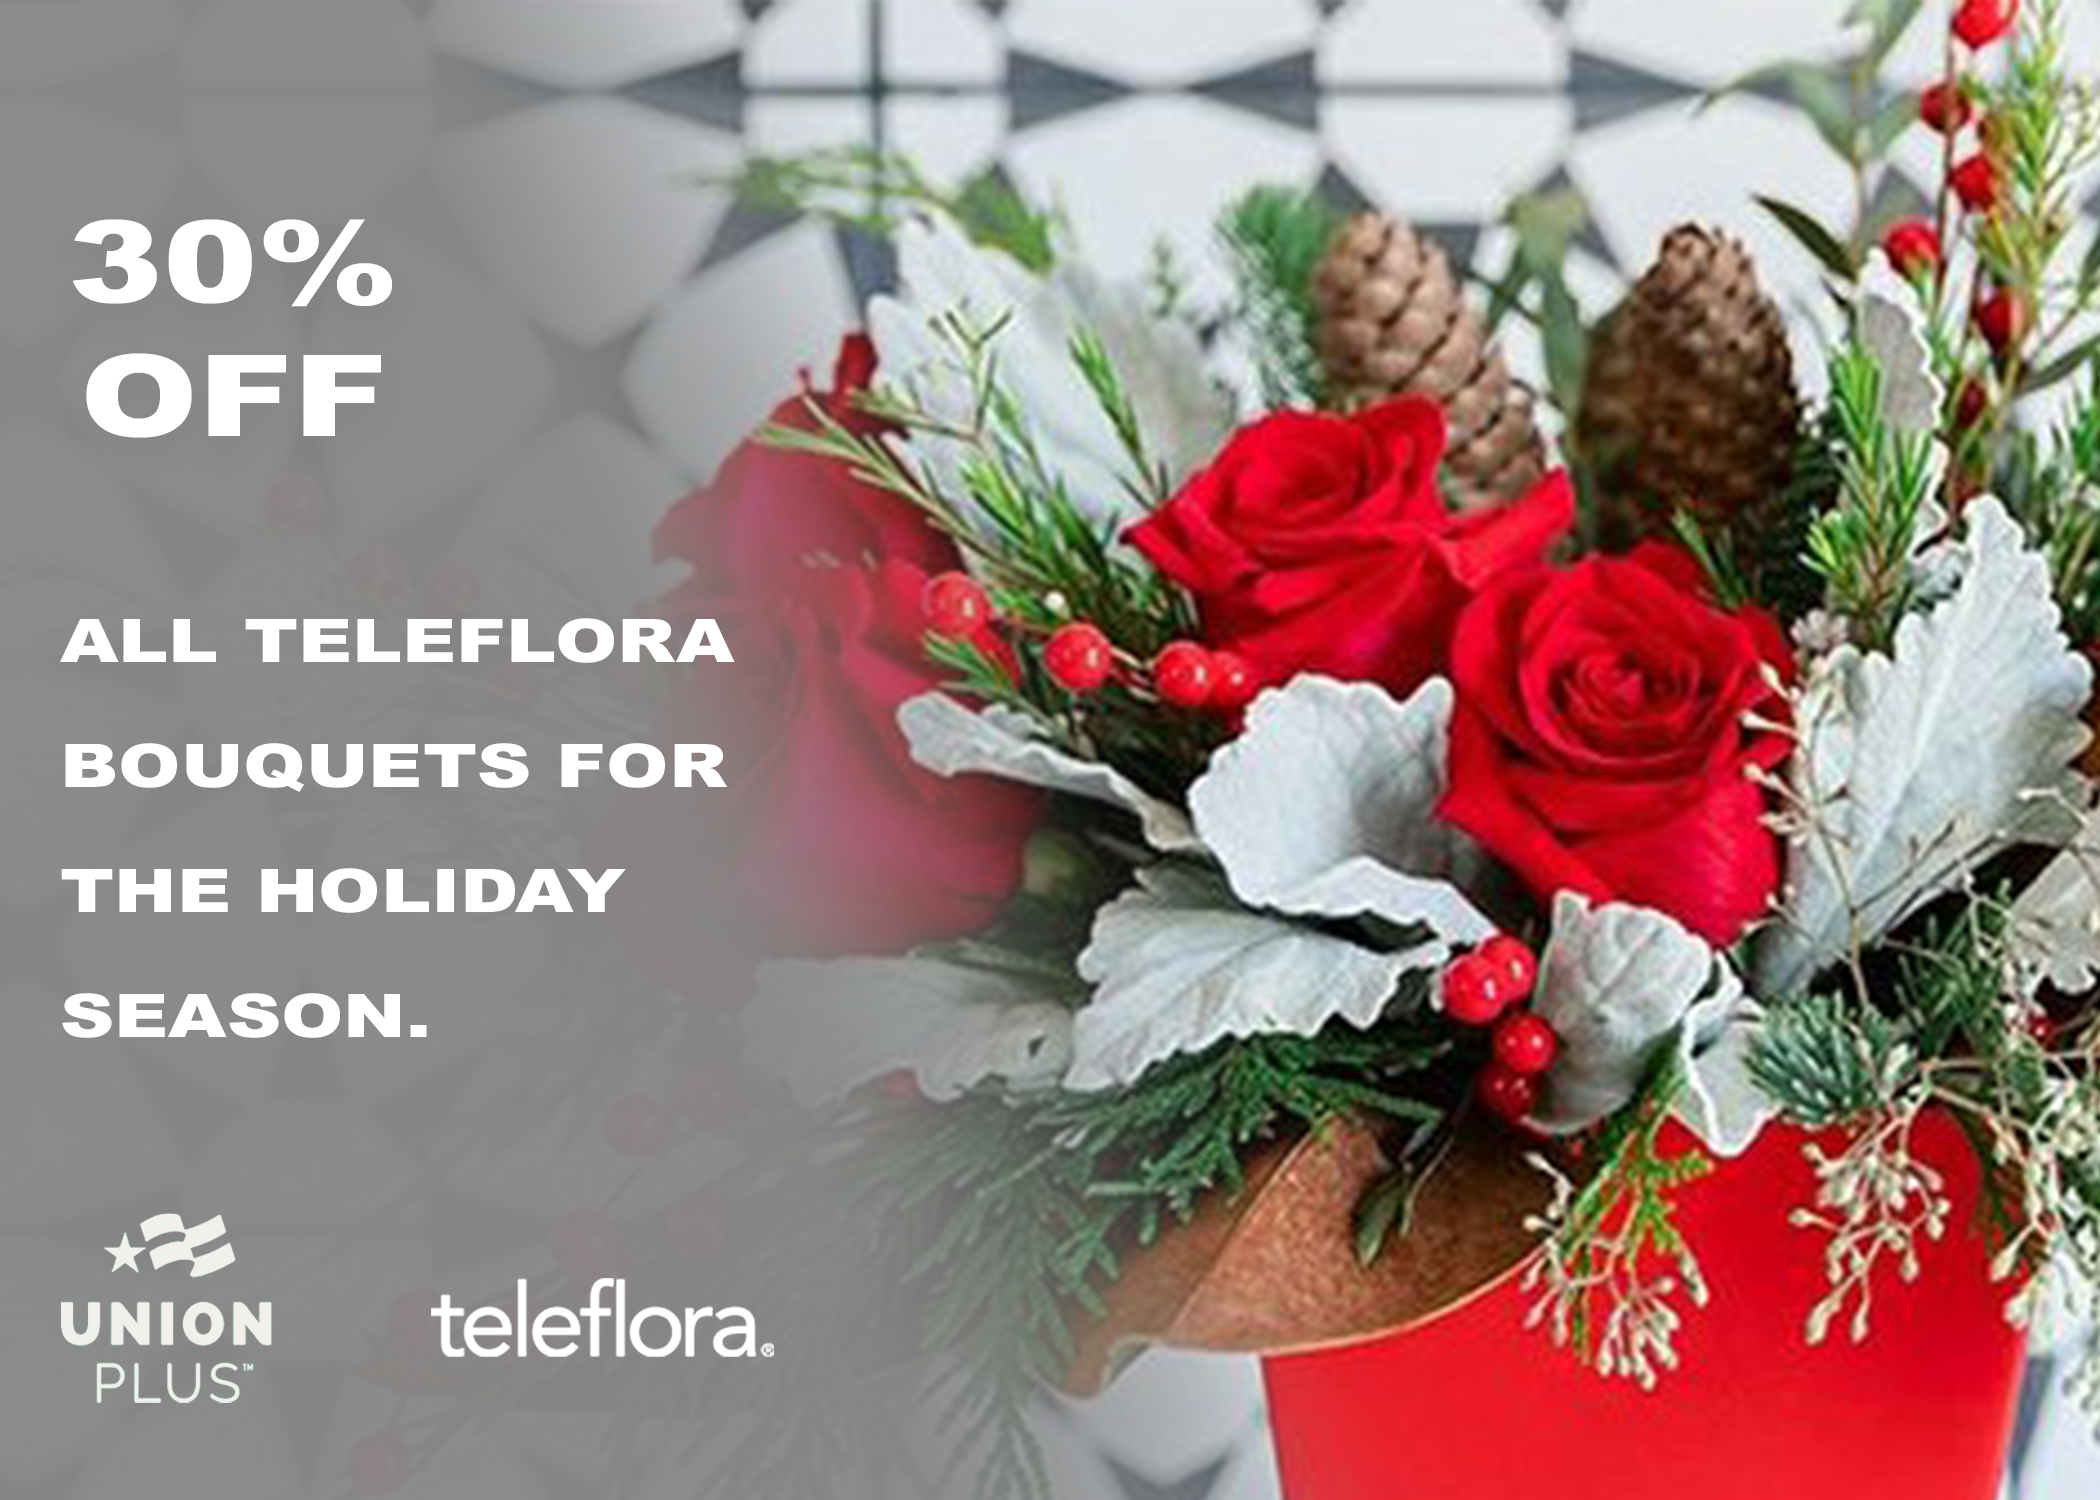 30% off Teleflora bouquets for the holidays from Union Plus.